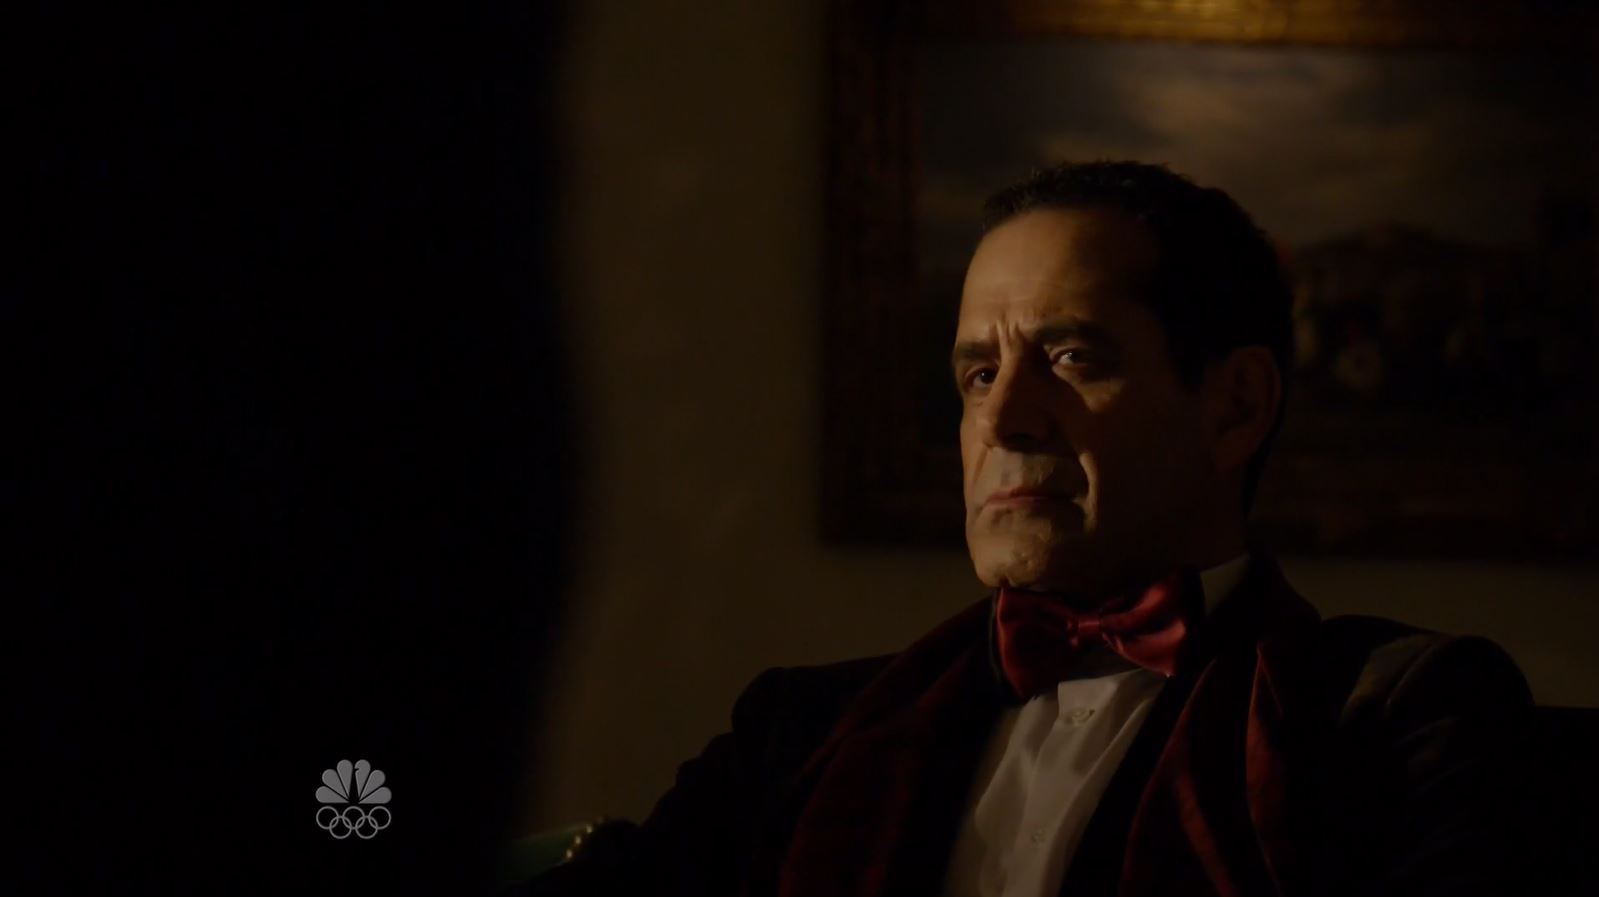 Alistair Pitt (Tony Shalhoub) listens to Reddington. The Blacklist S3Ep13 Alistair Pitt Review